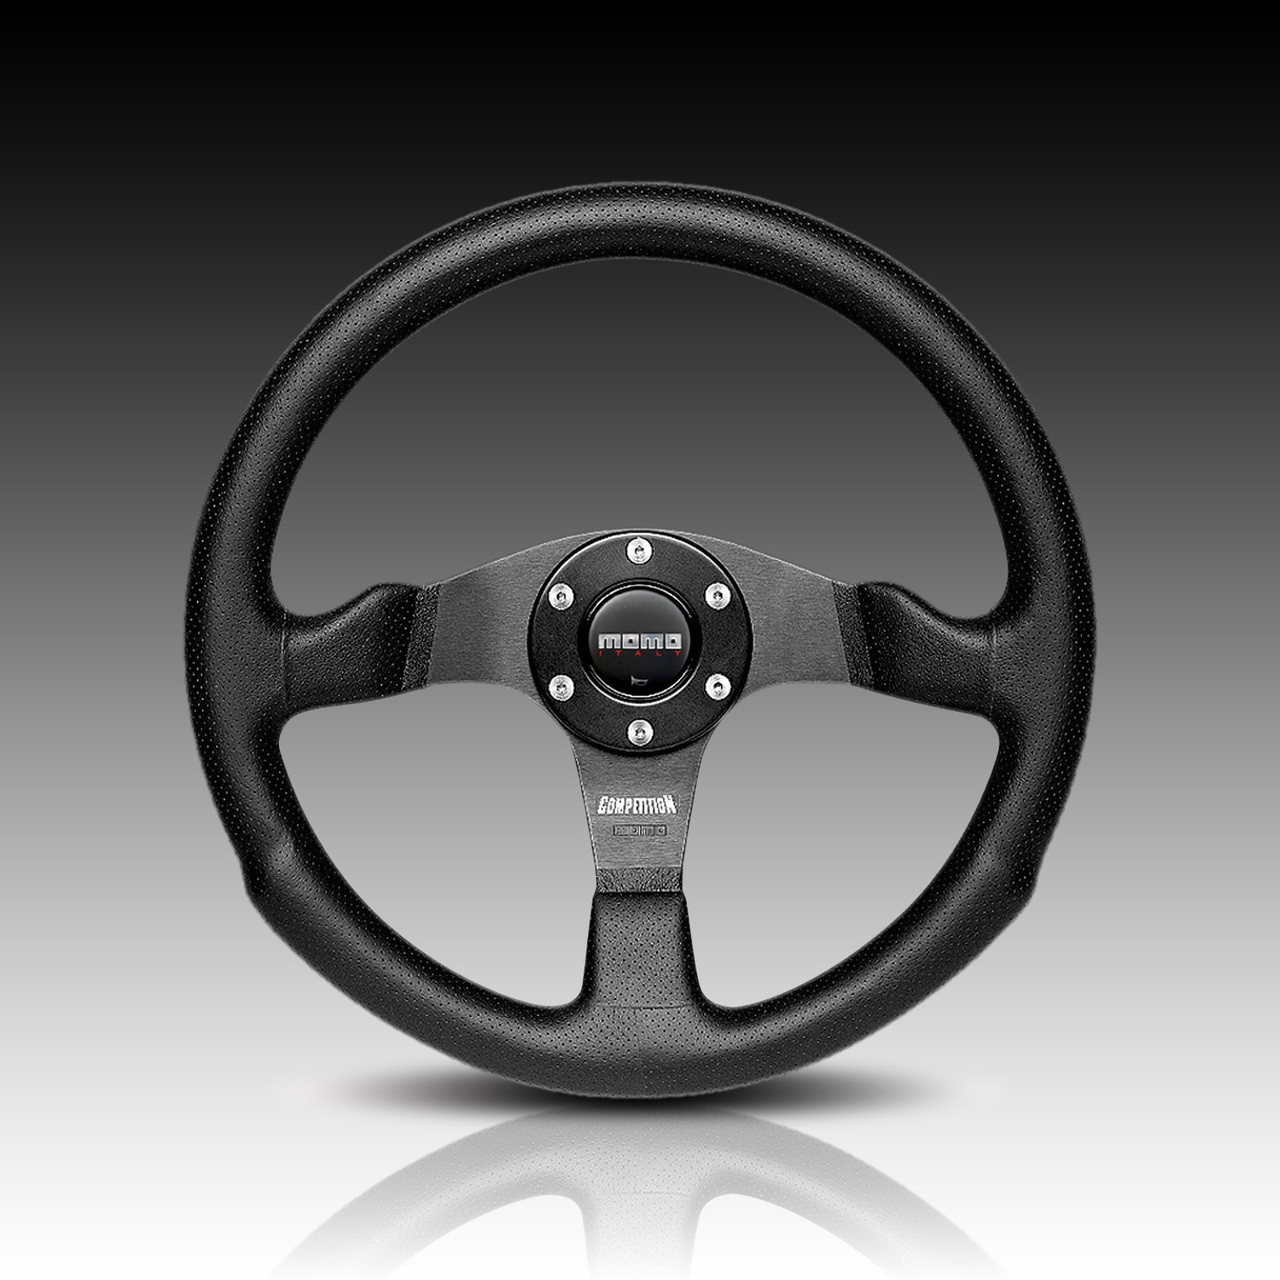 Momo COM35BK0B Competition 350 mm Leather Steering Wheel by MOMO